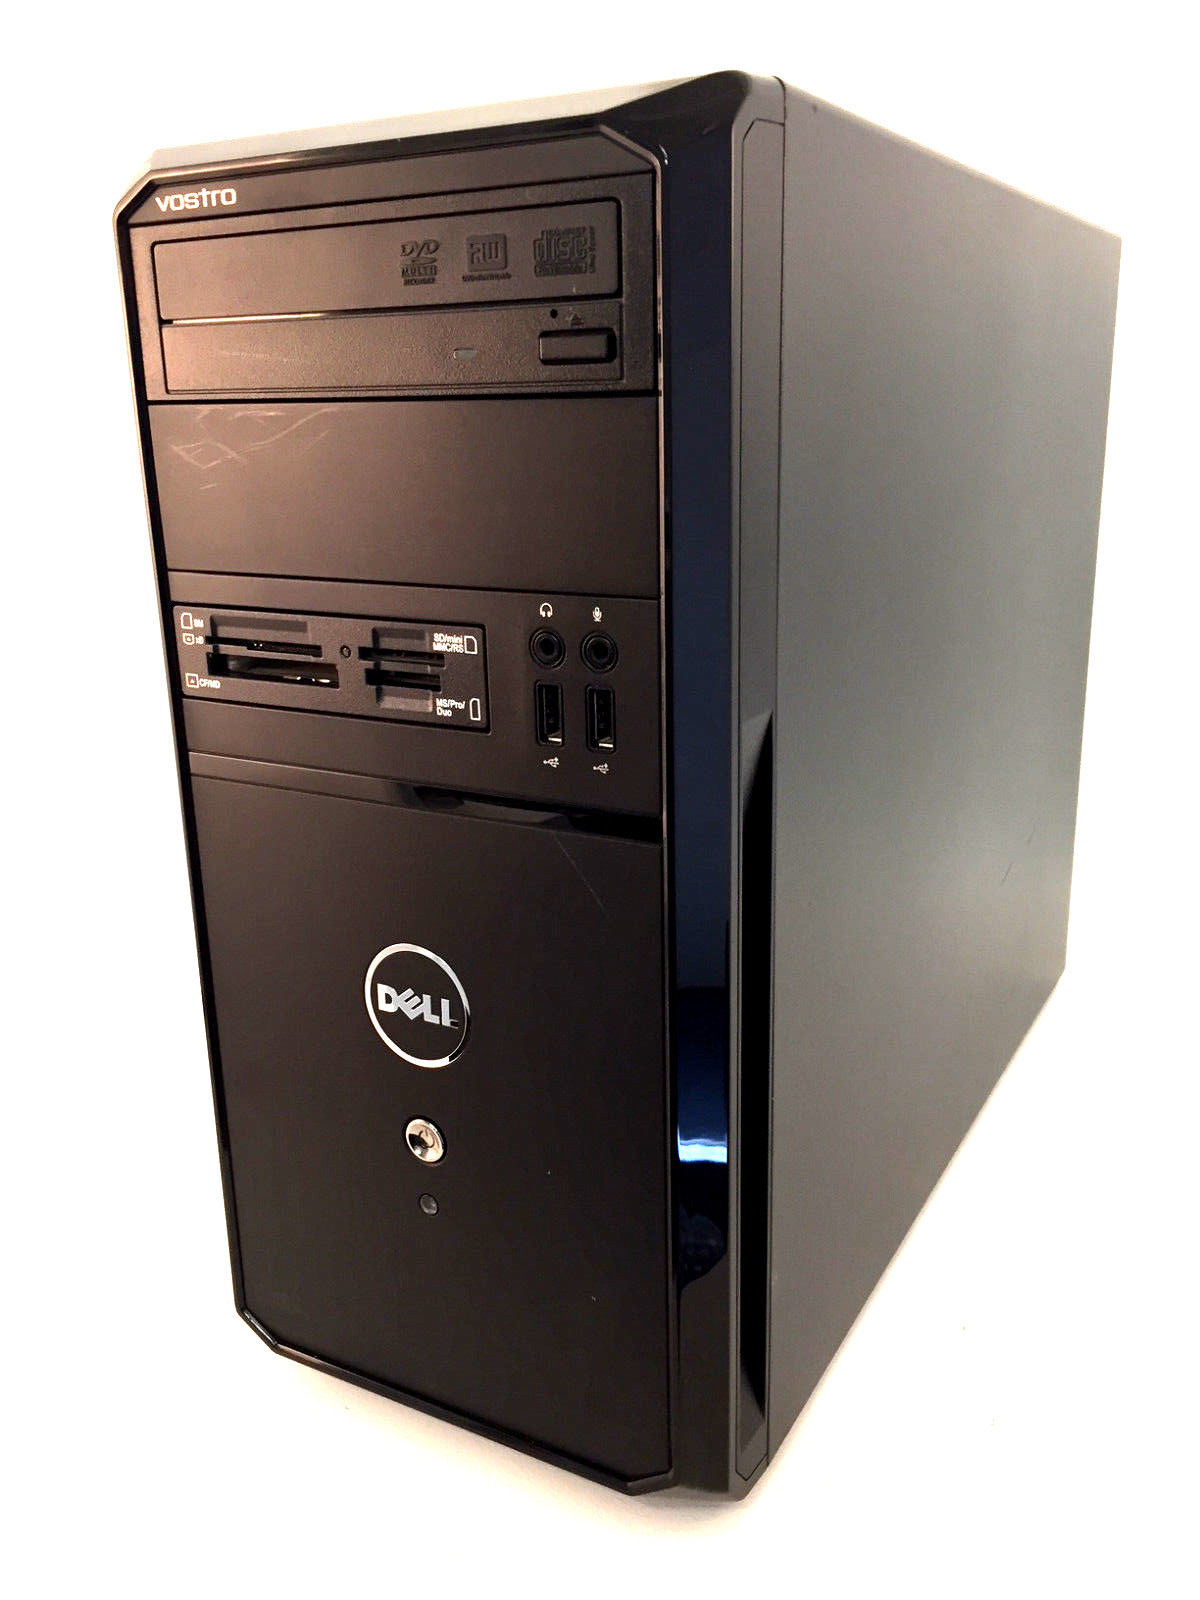 Dell Vostrol 260 No 2